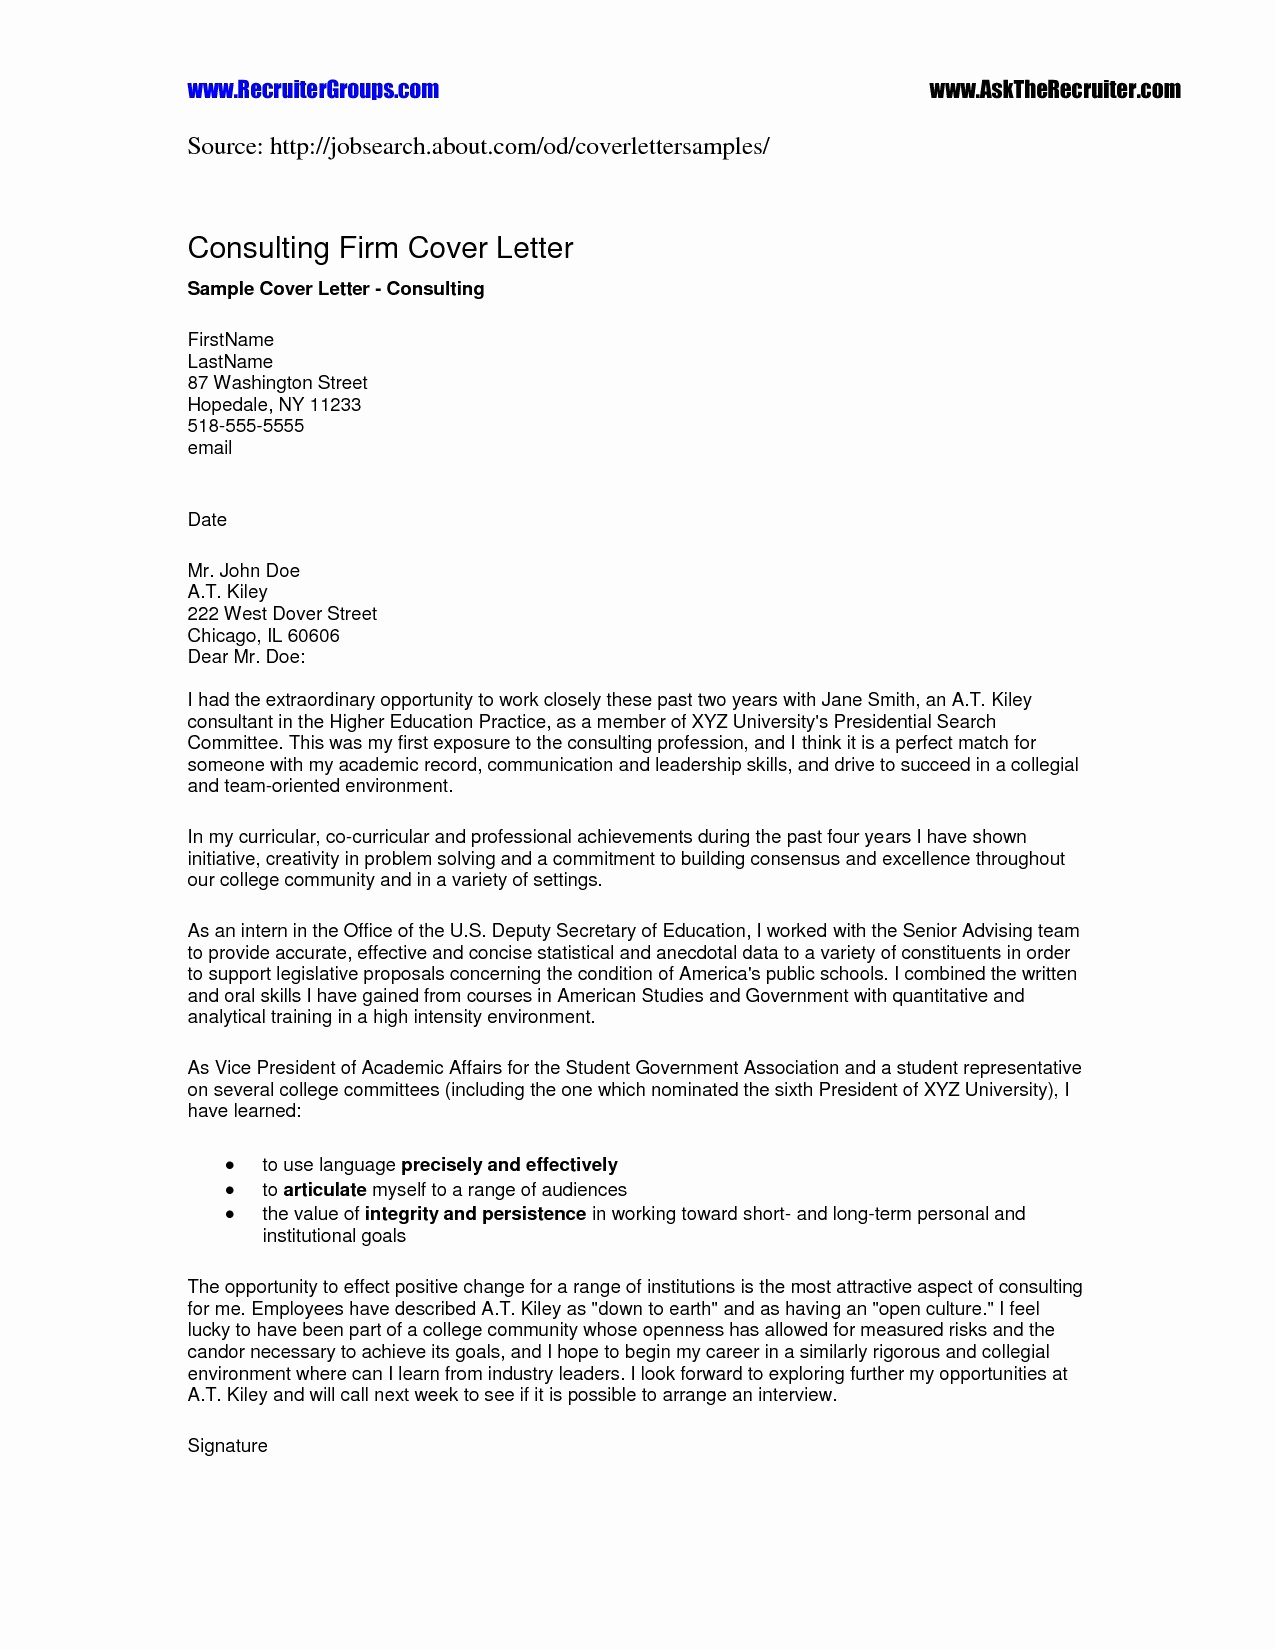 letter to congressman template 20 health care cover letter sample